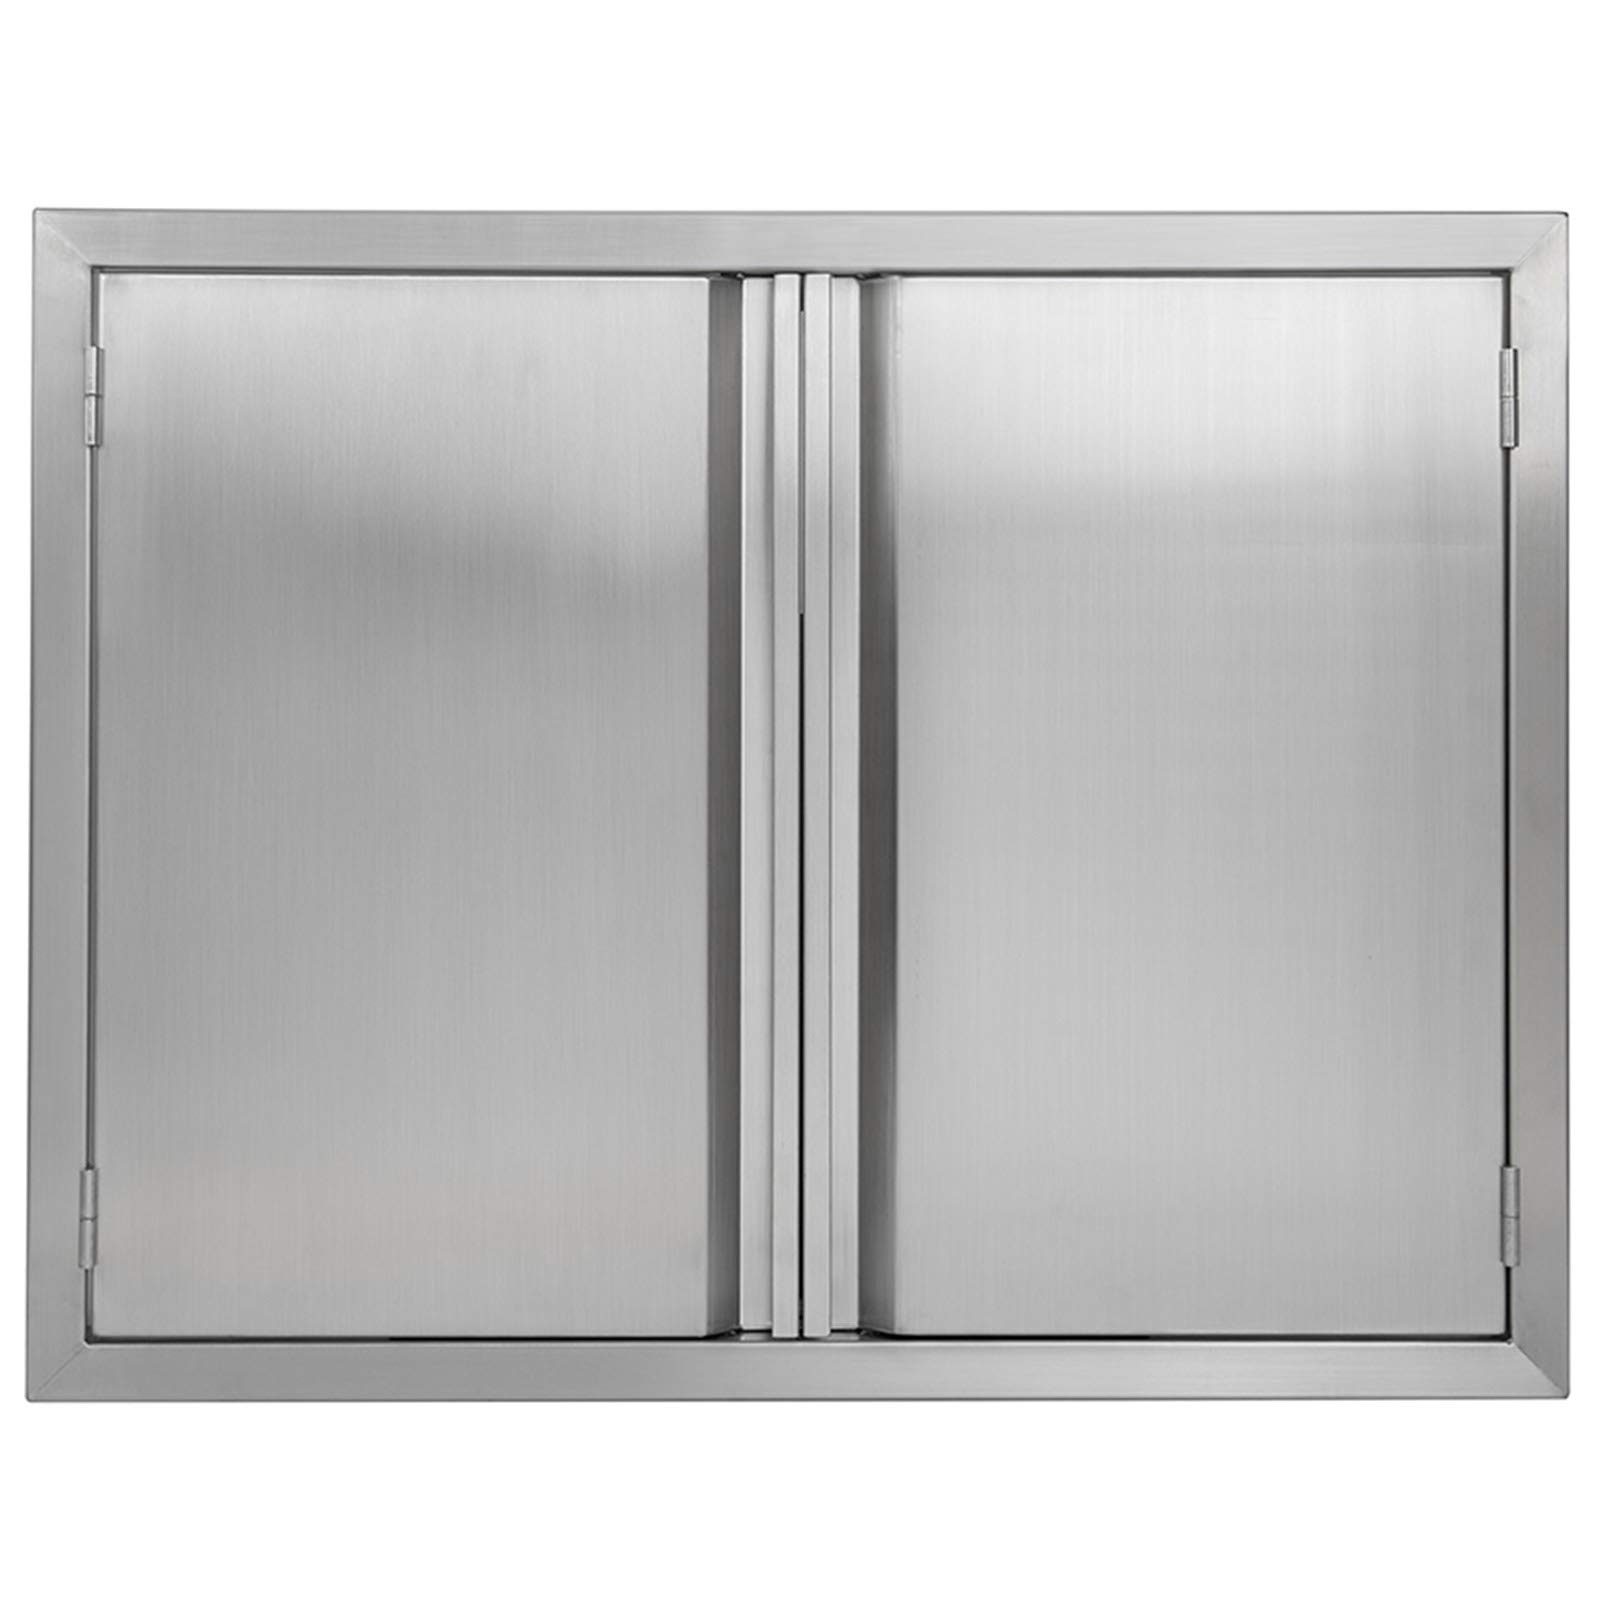 Amazon Com Bi Dtool Double Bbq Access Door 304 Brushed Stainless Steel Bbq Island Doors For Outdoor Kitchen Outdoor Cabinet Barbeque Grill Or Bbq Island 31 W X 24 H Home Improvement